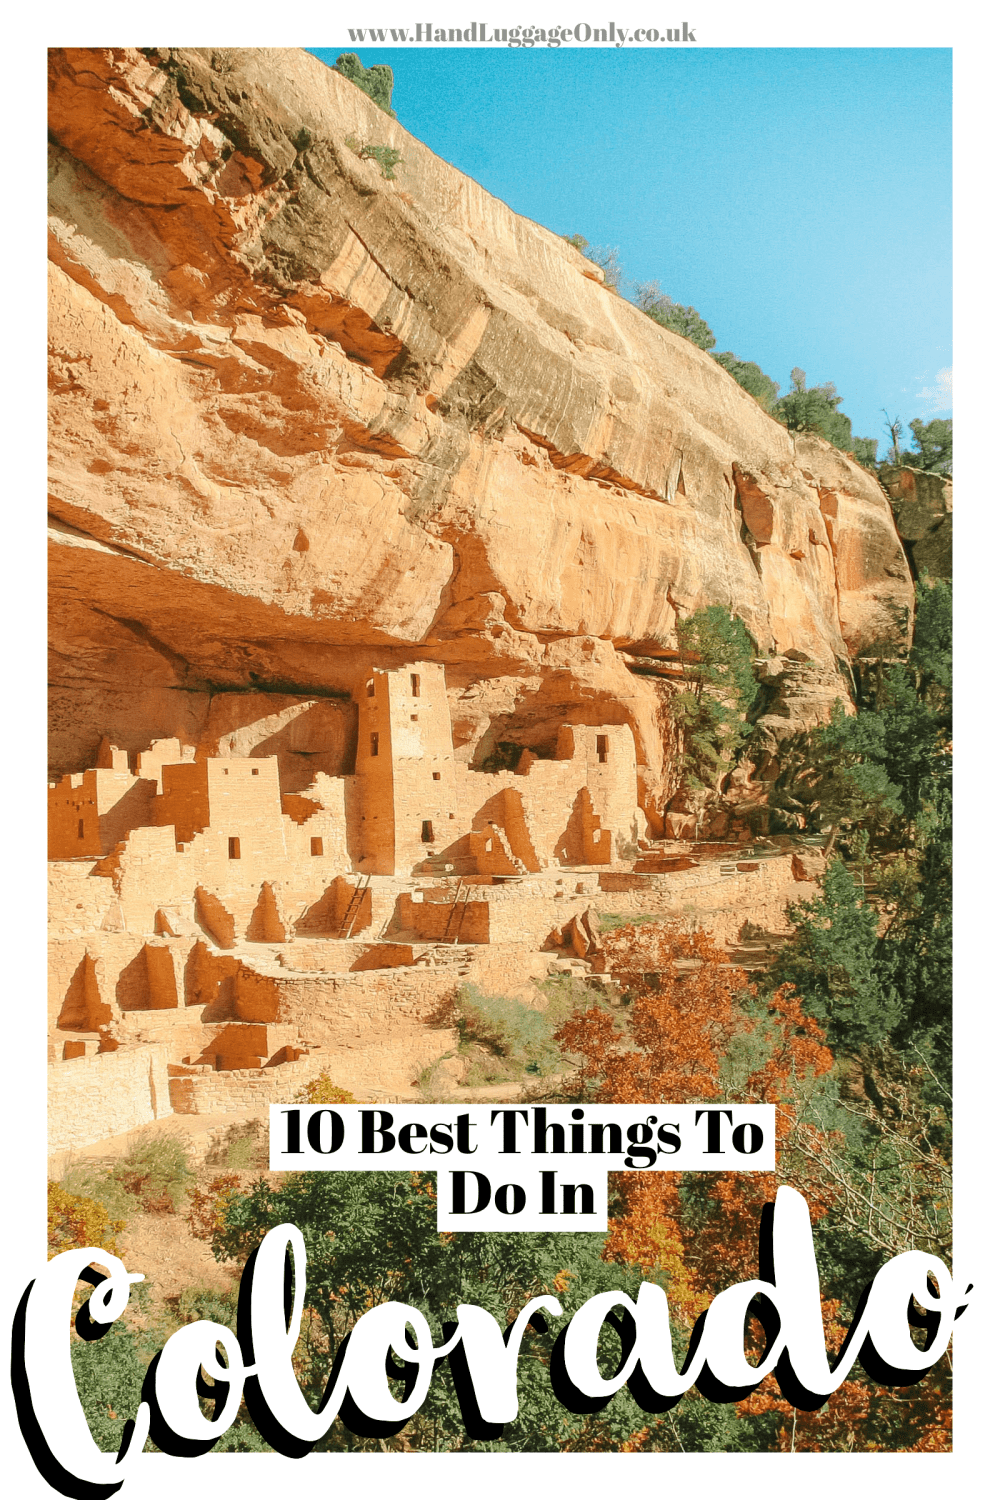 Best Things To Do In Colorado (1)